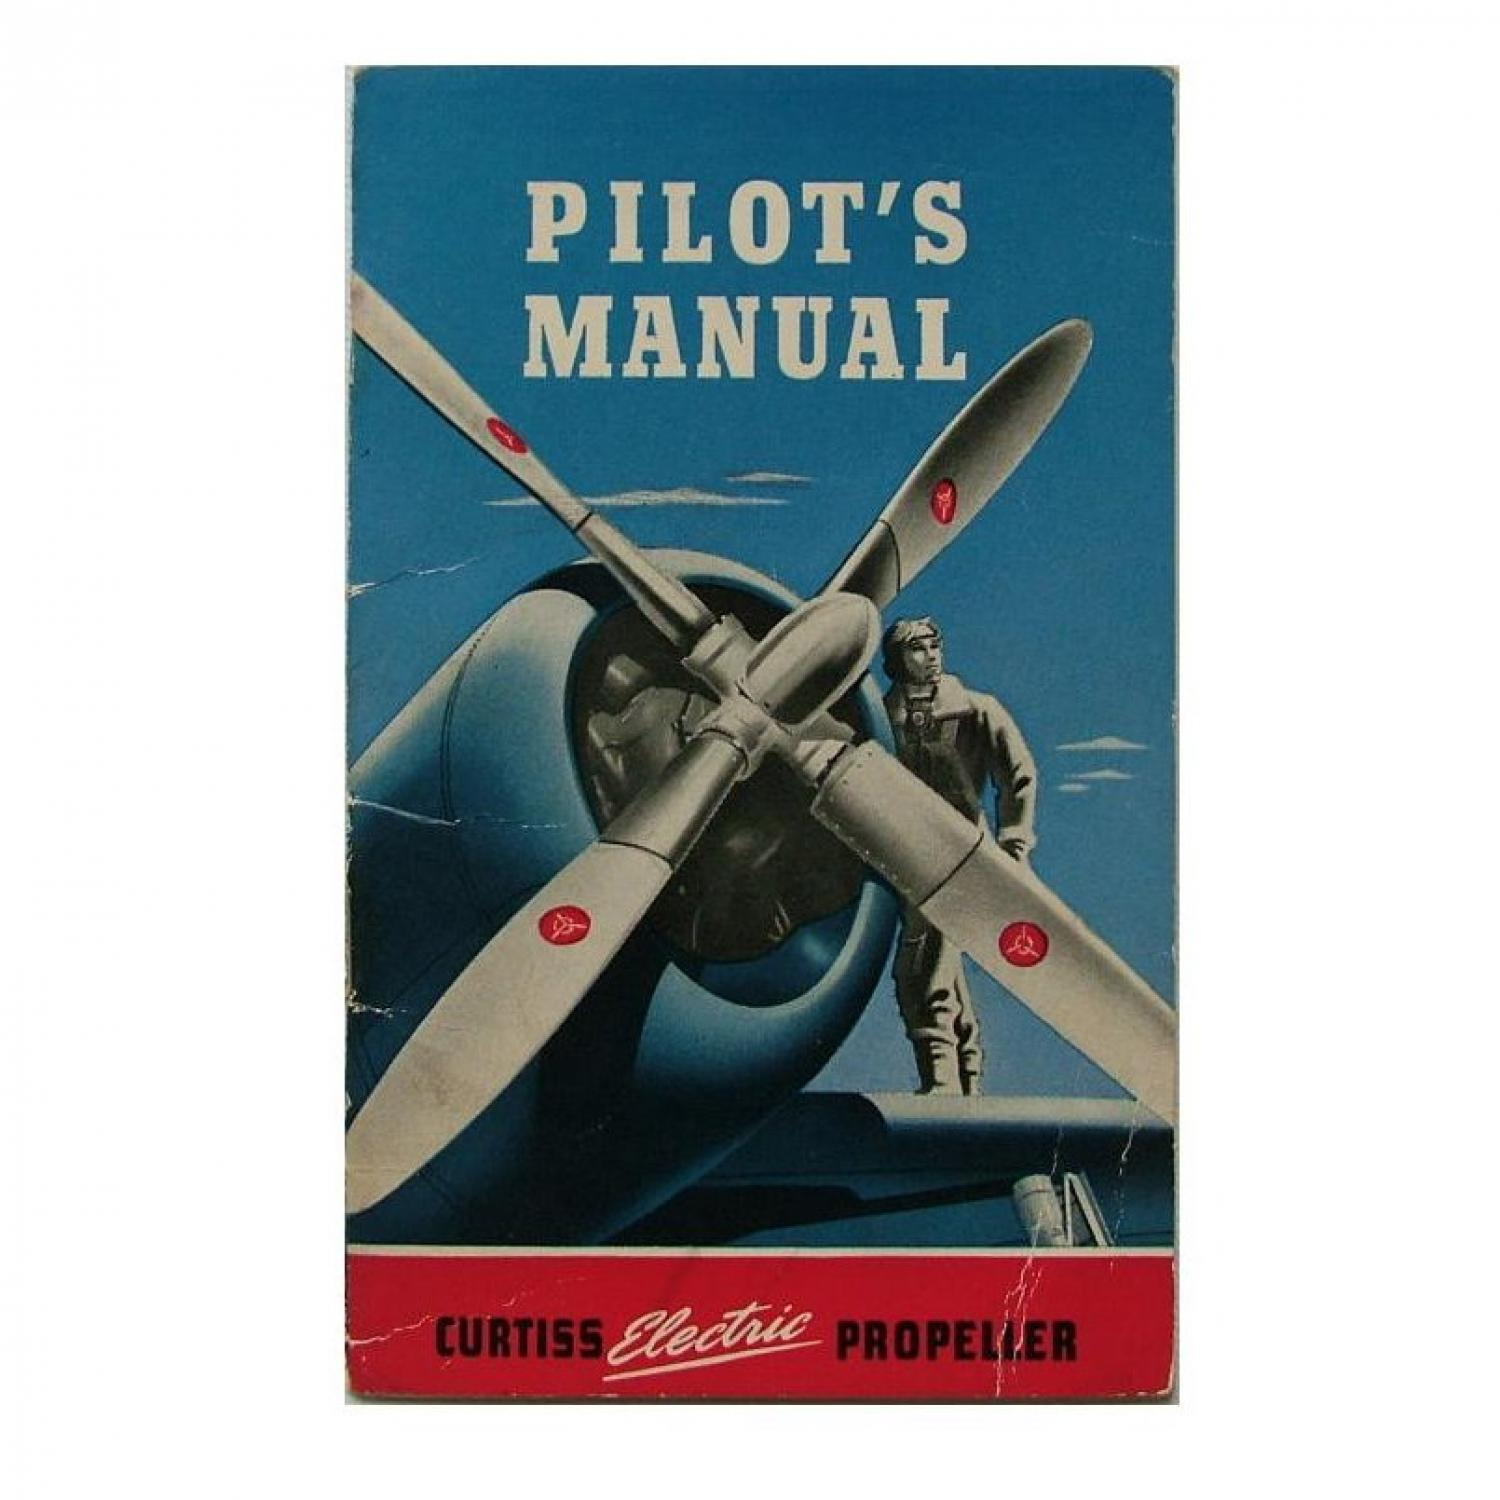 Pilot's Manual - Curtiss Electric Propeller